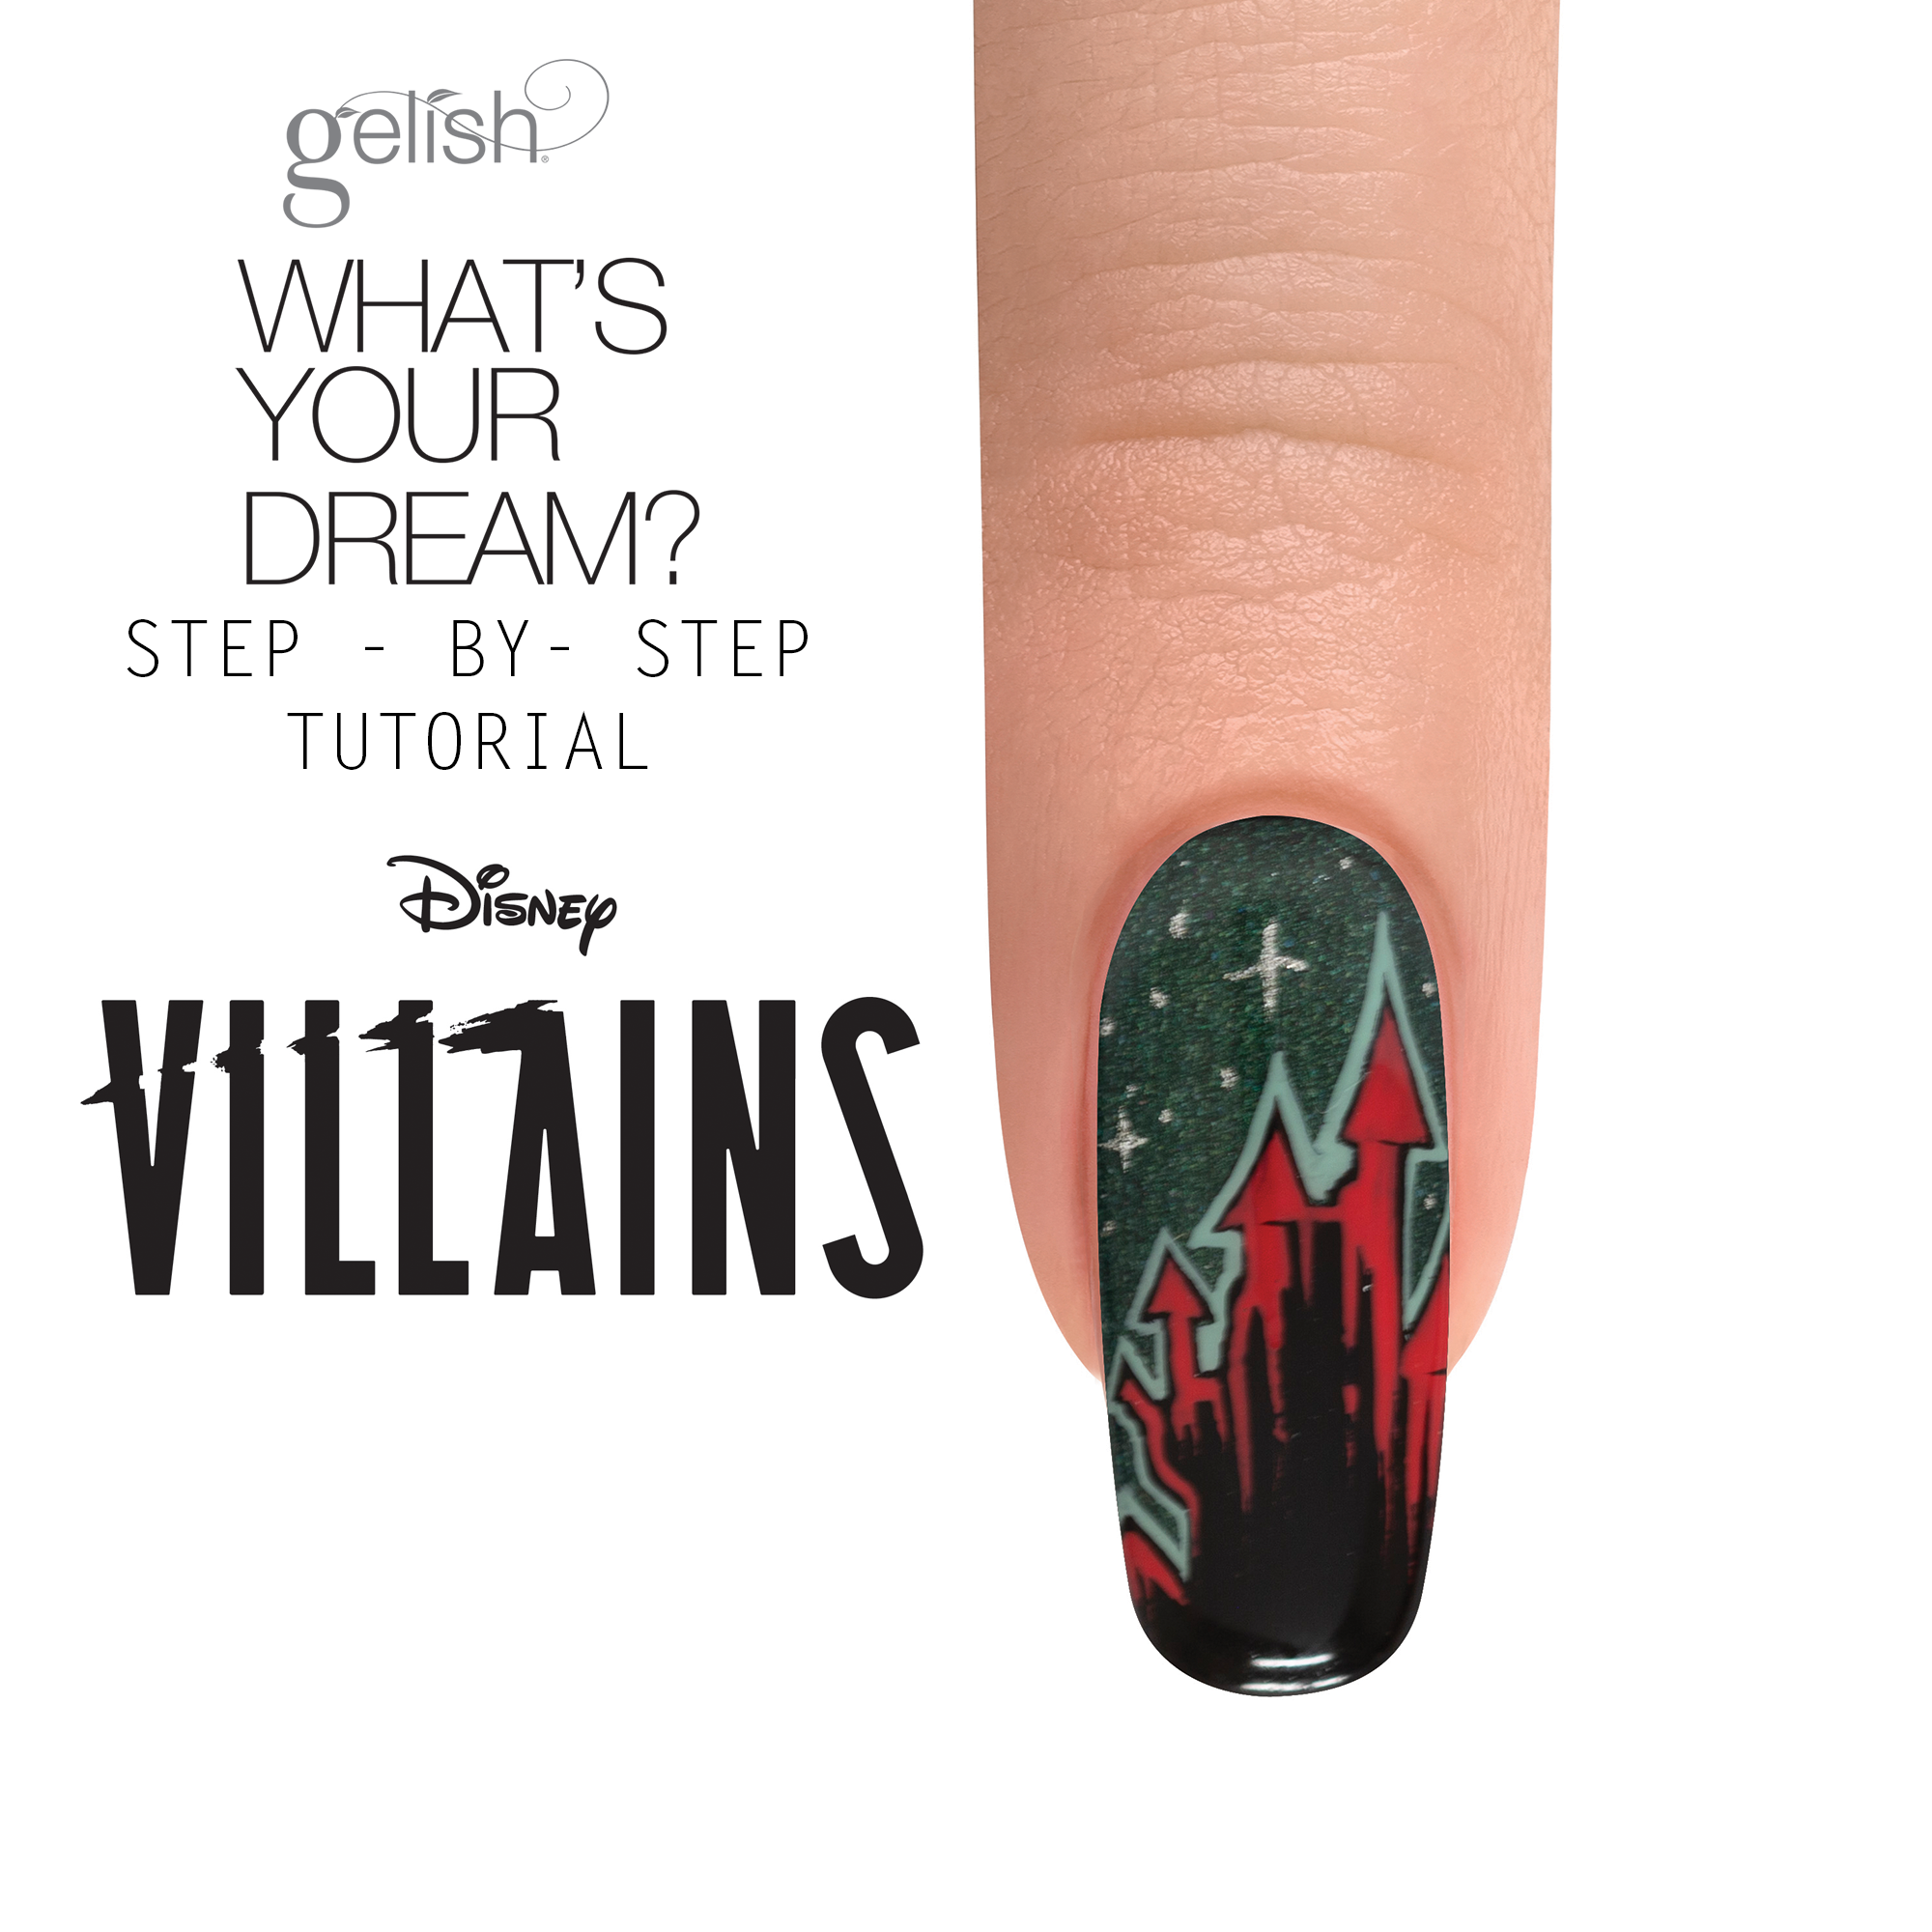 Step-by-Step Nail Art: What's Your Dream?